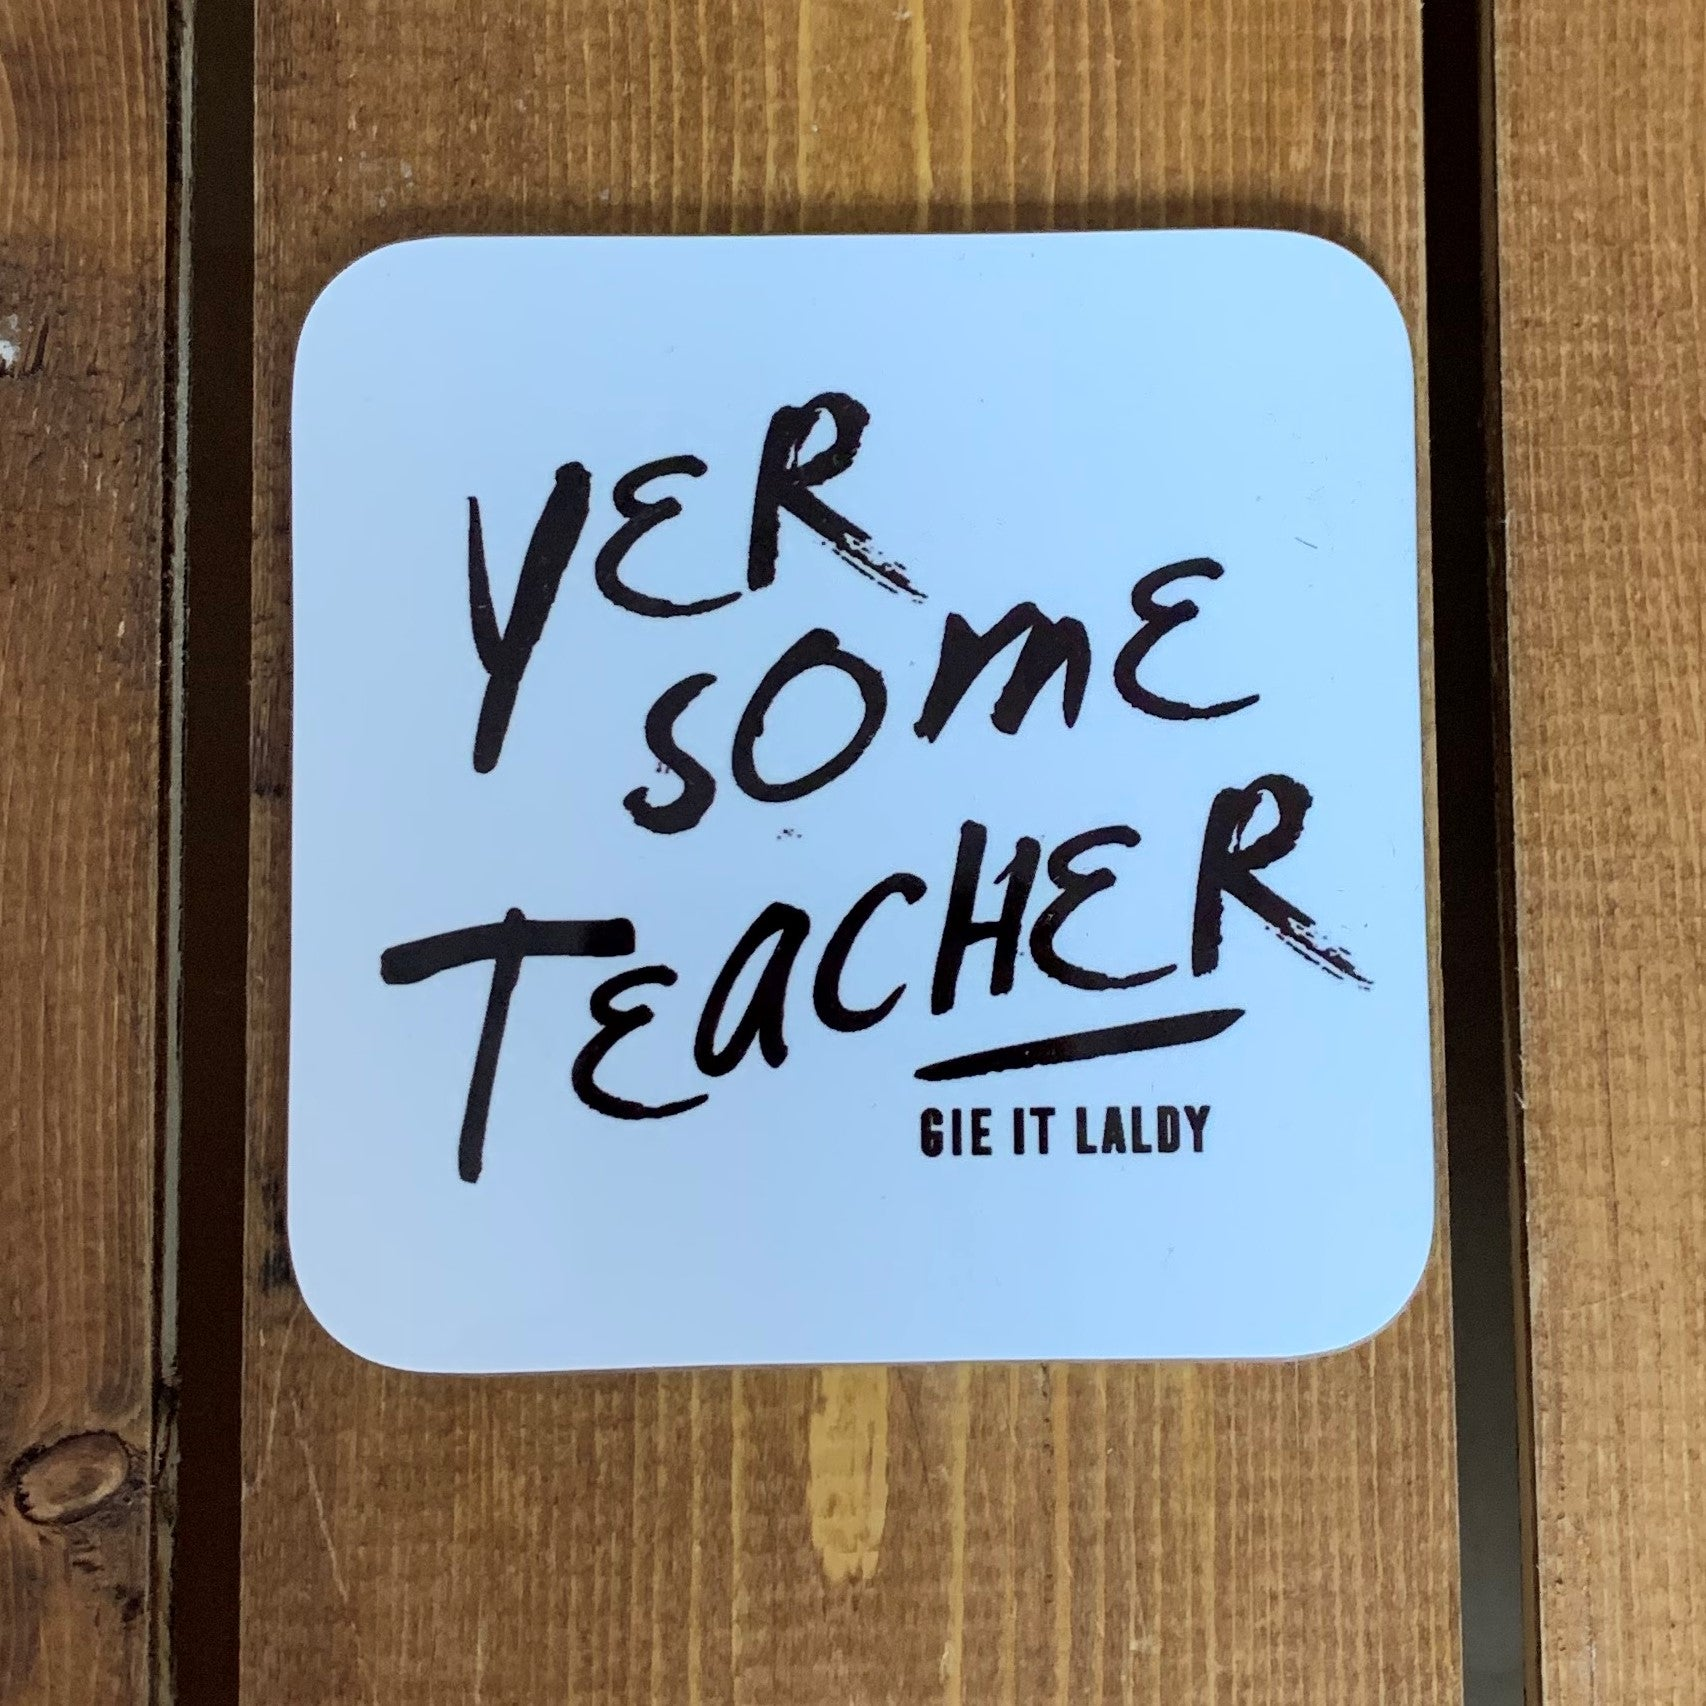 Monochrome Coaster featuring the Scottish slang slogan:  'Yer Some Teacher'